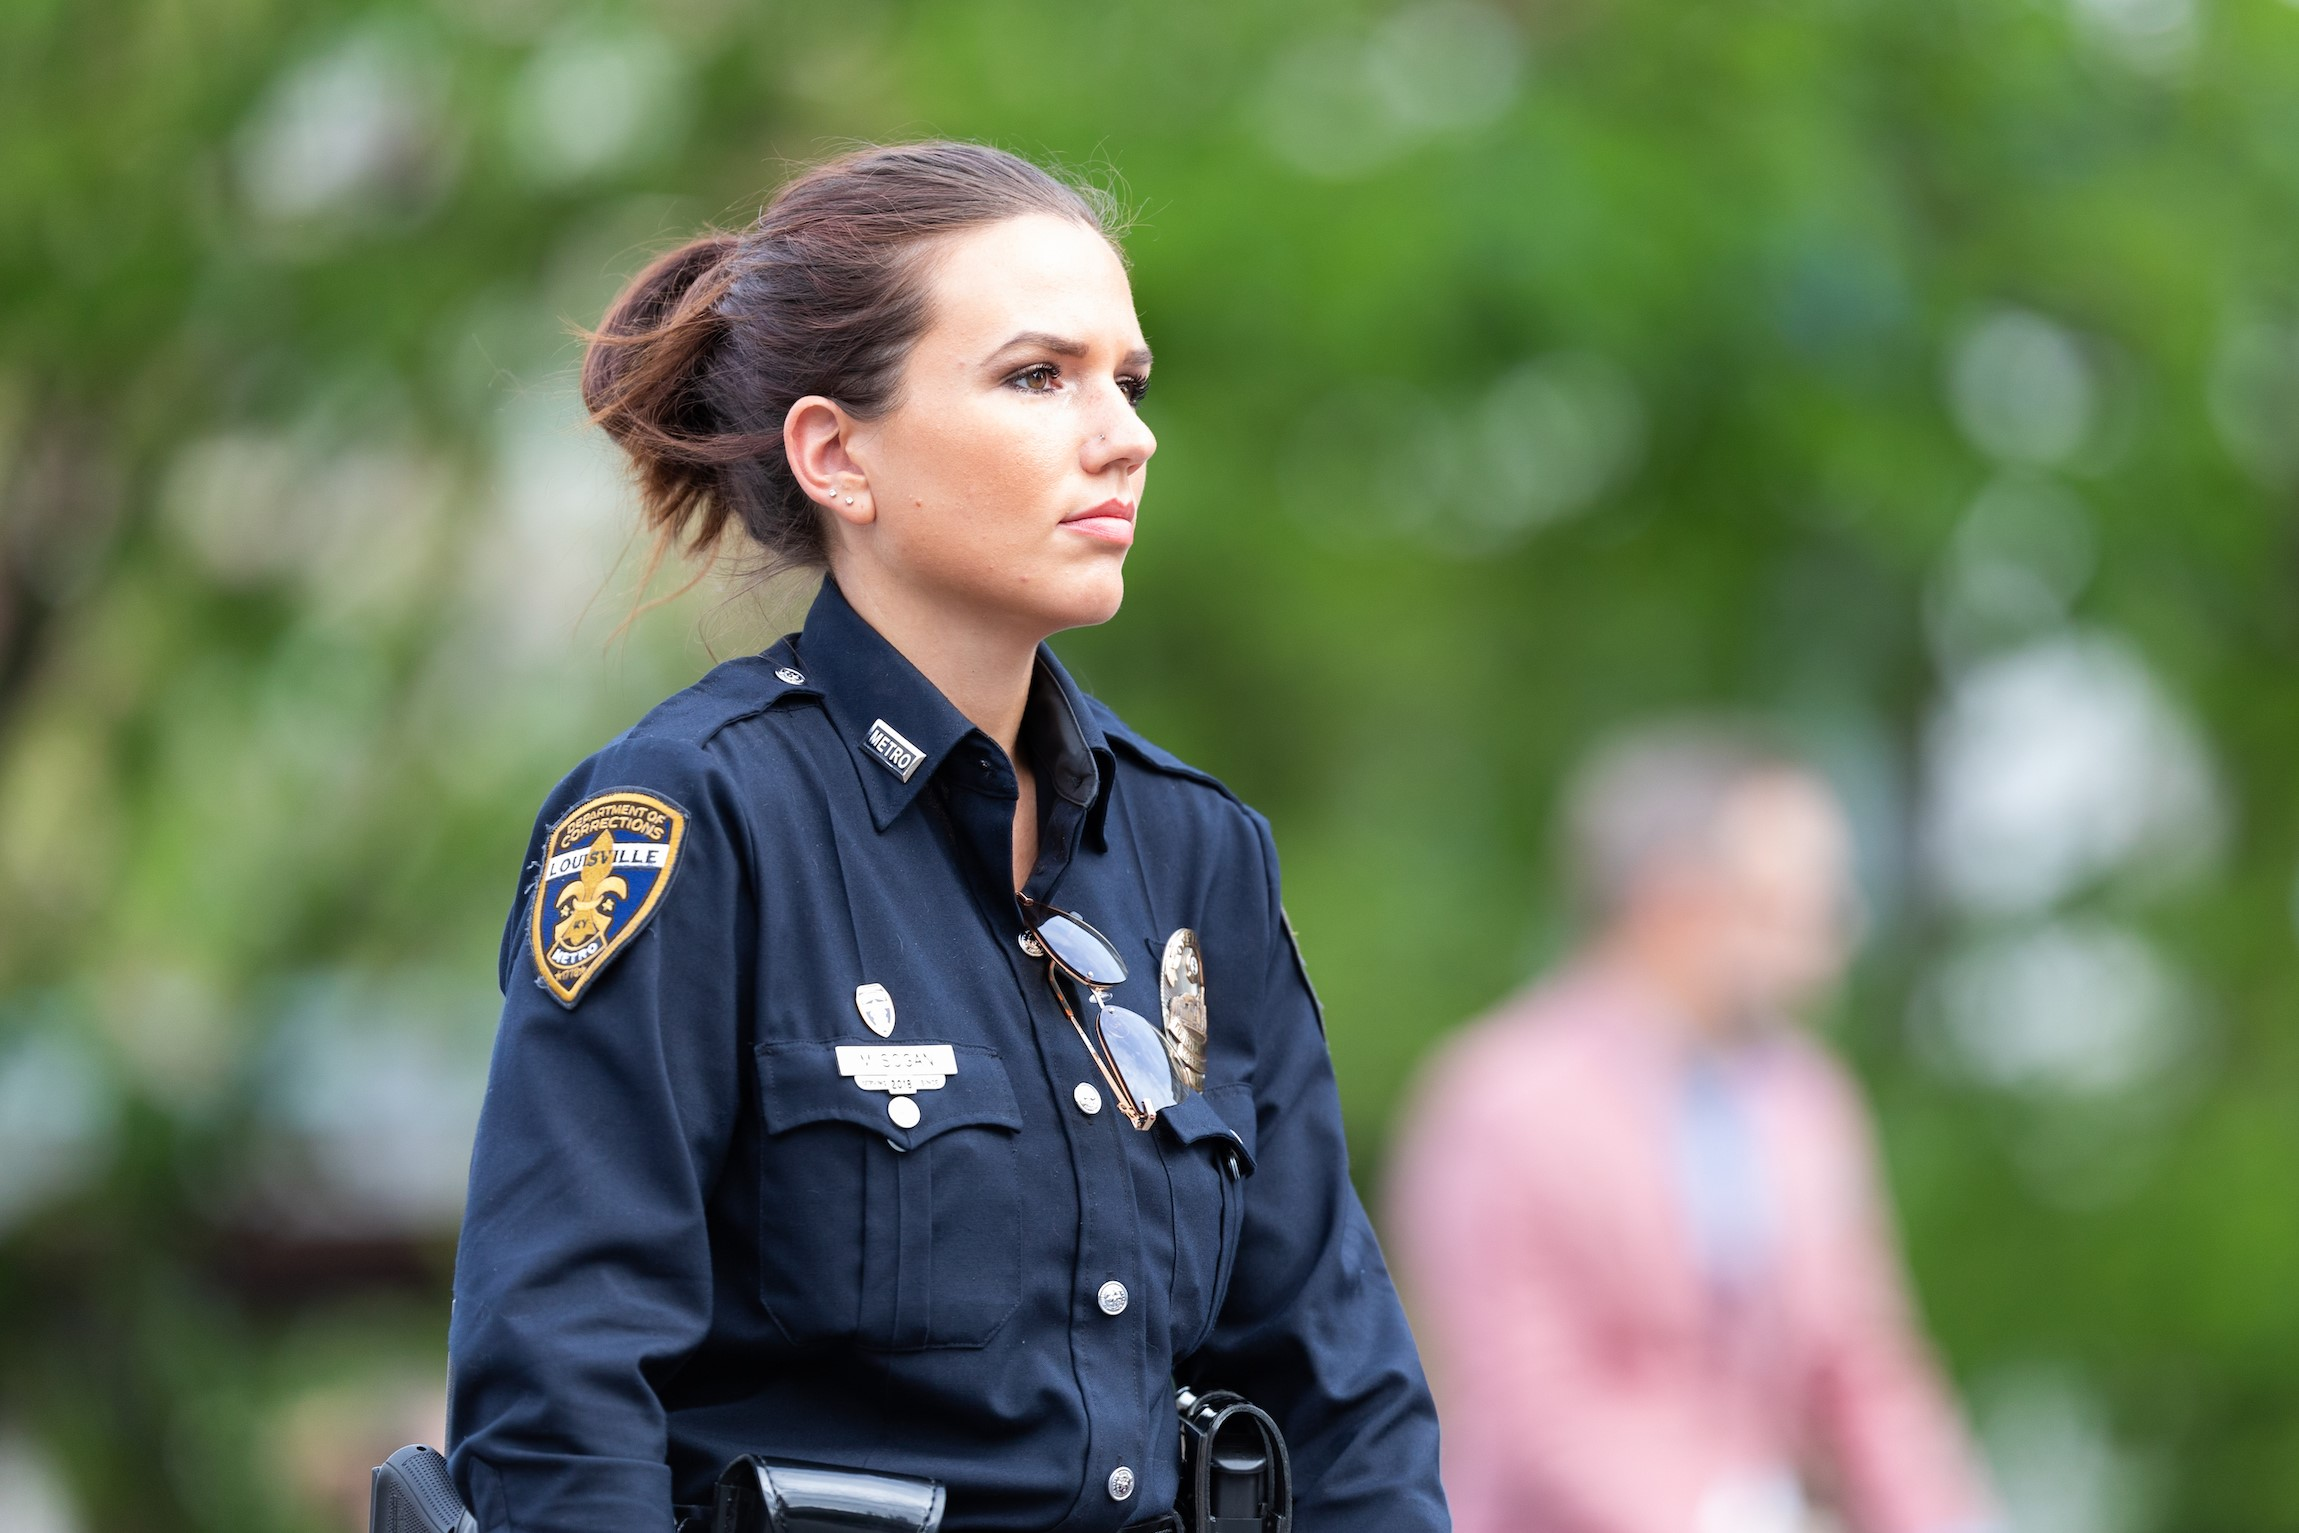 Woman Police Officer On-Duty